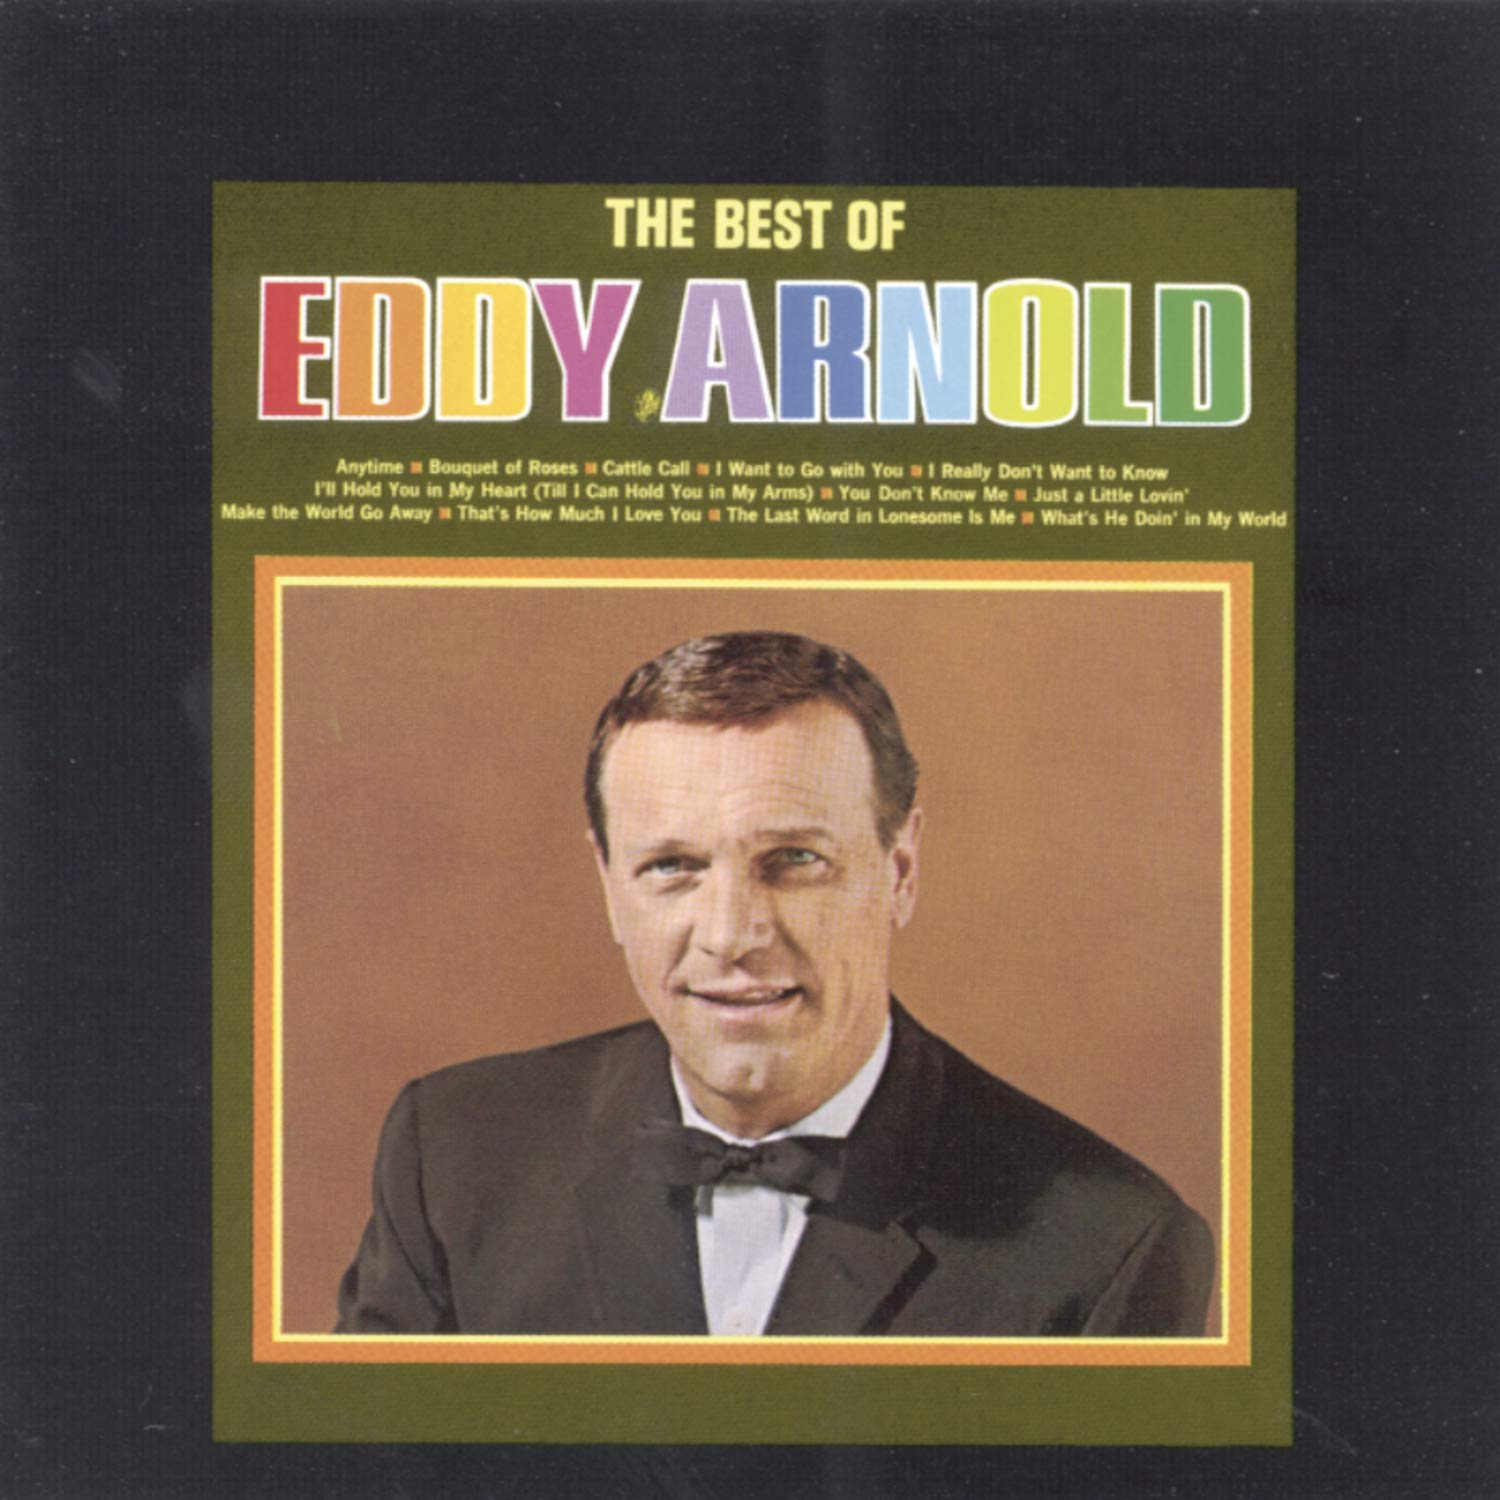 The Best of Eddy Arnold by Sony Legacy